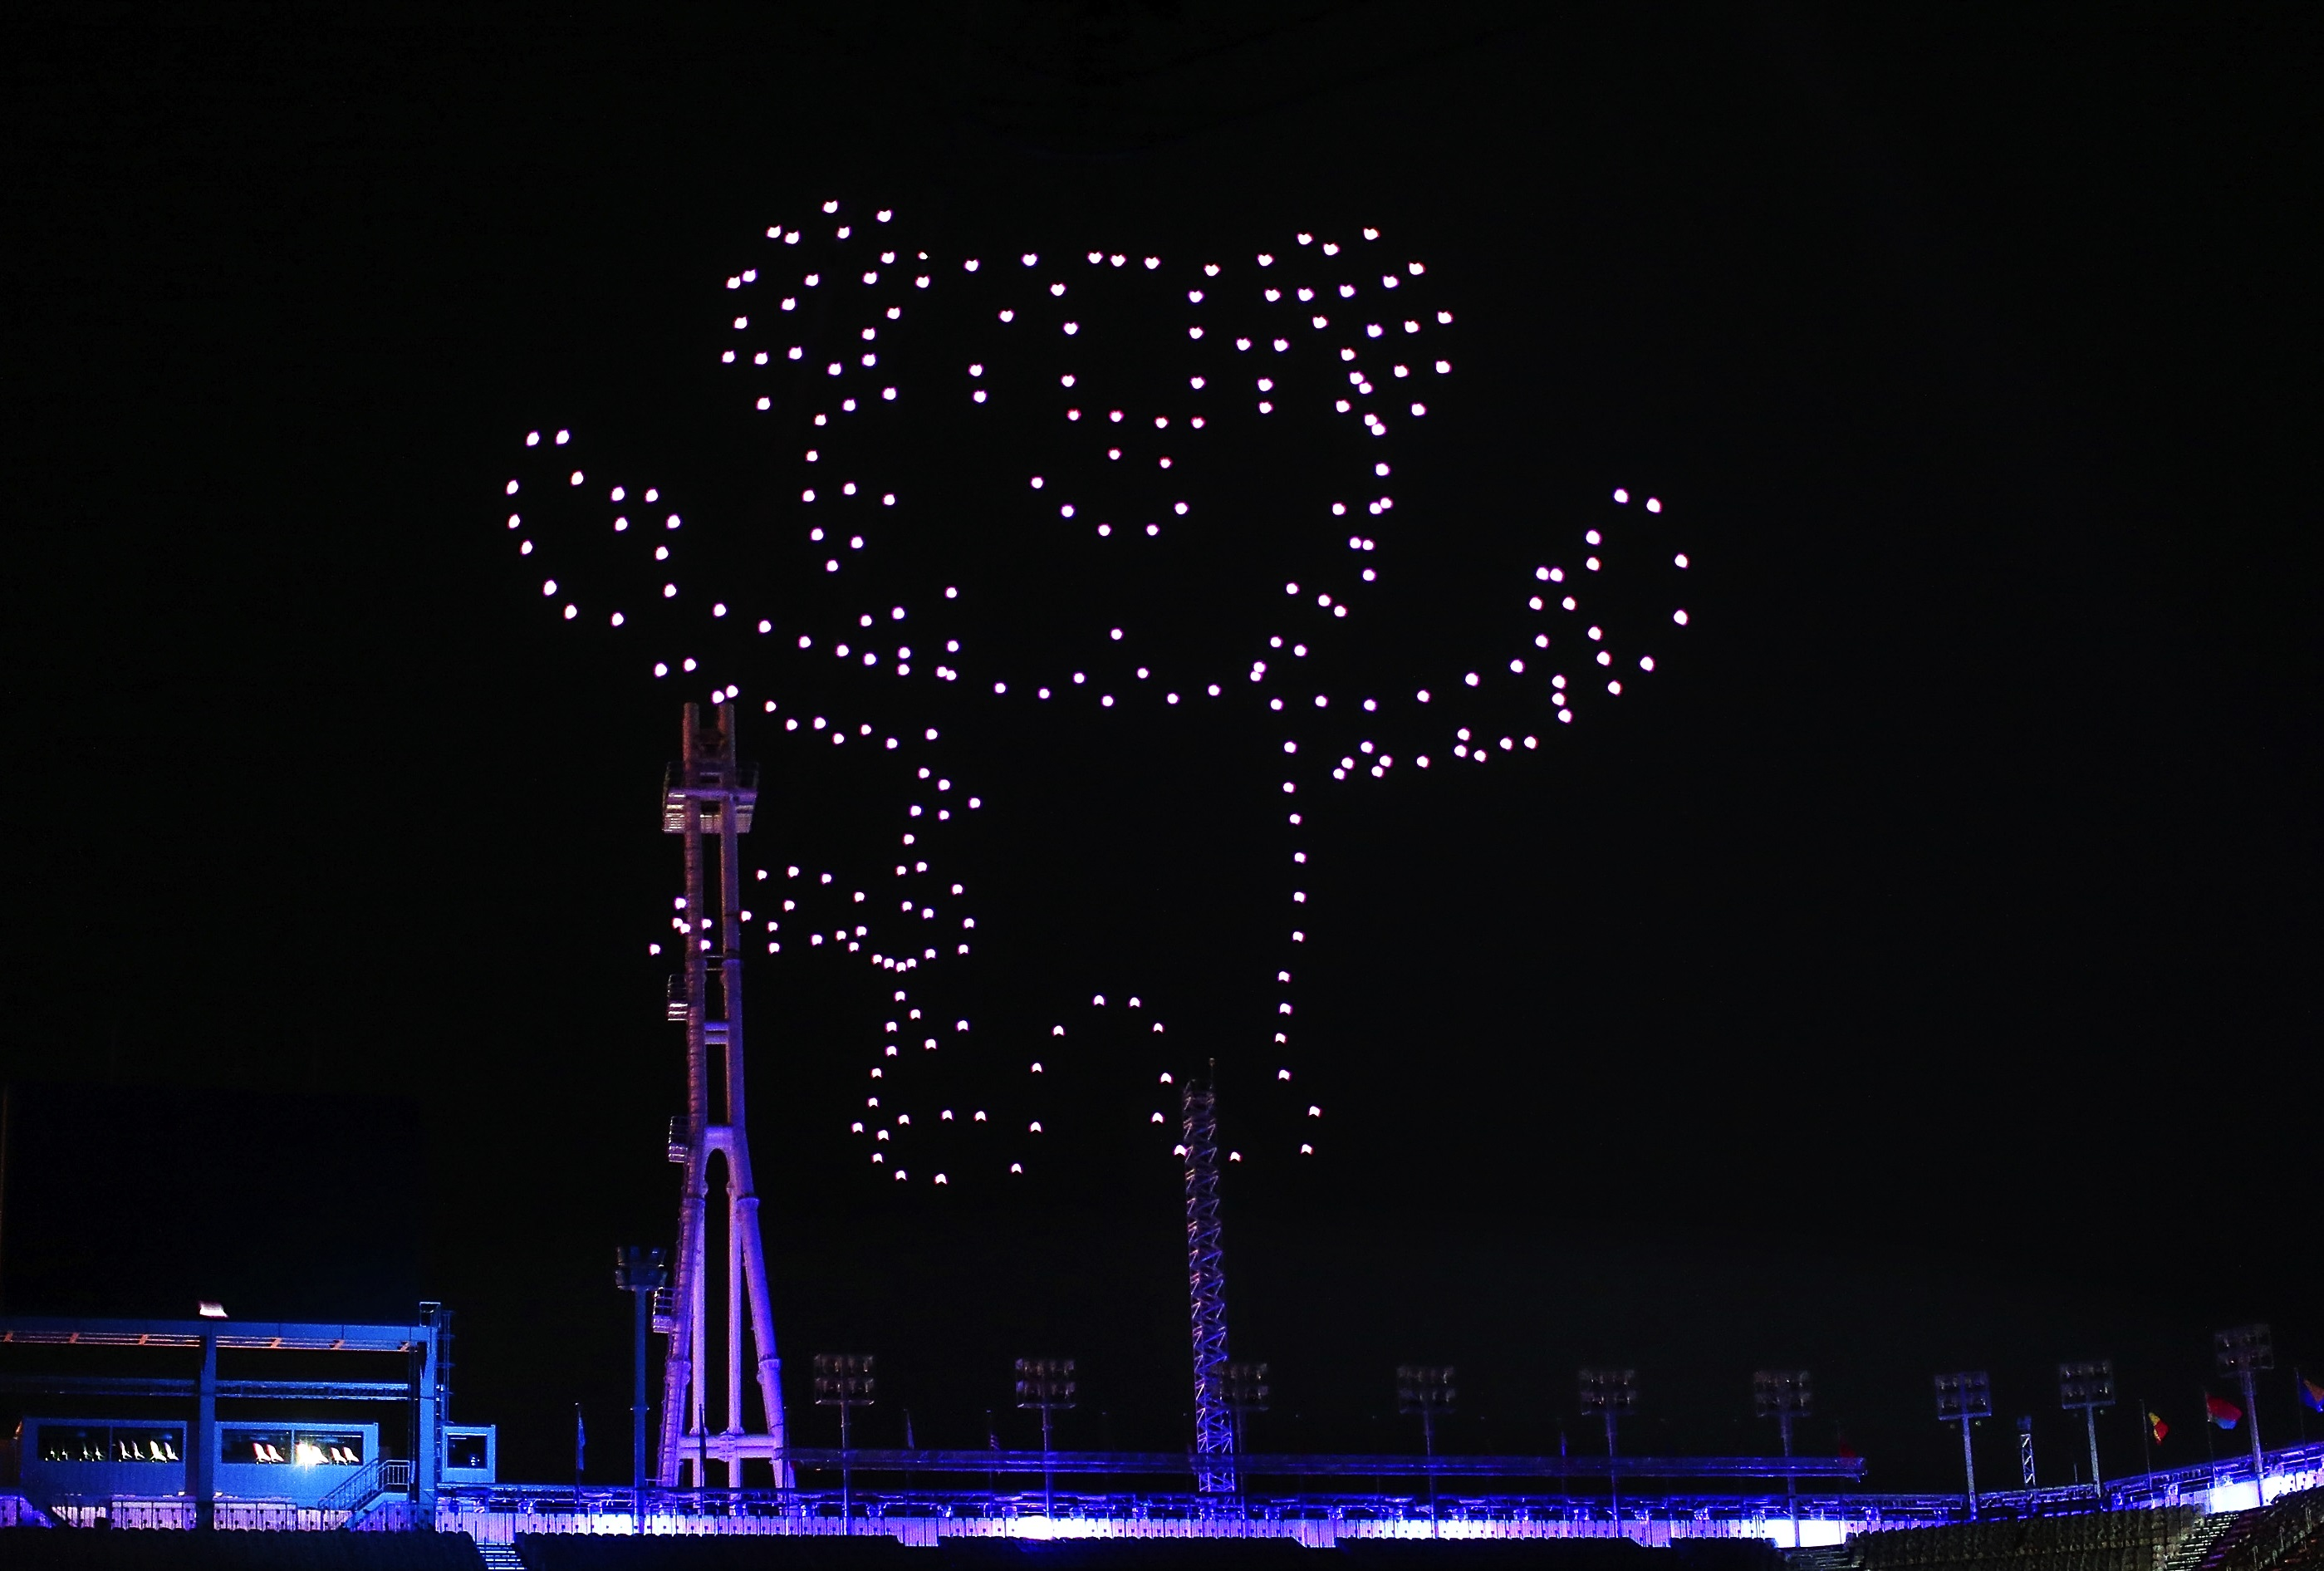 Intel held another drone light show in the Olympics Closing Ceremony